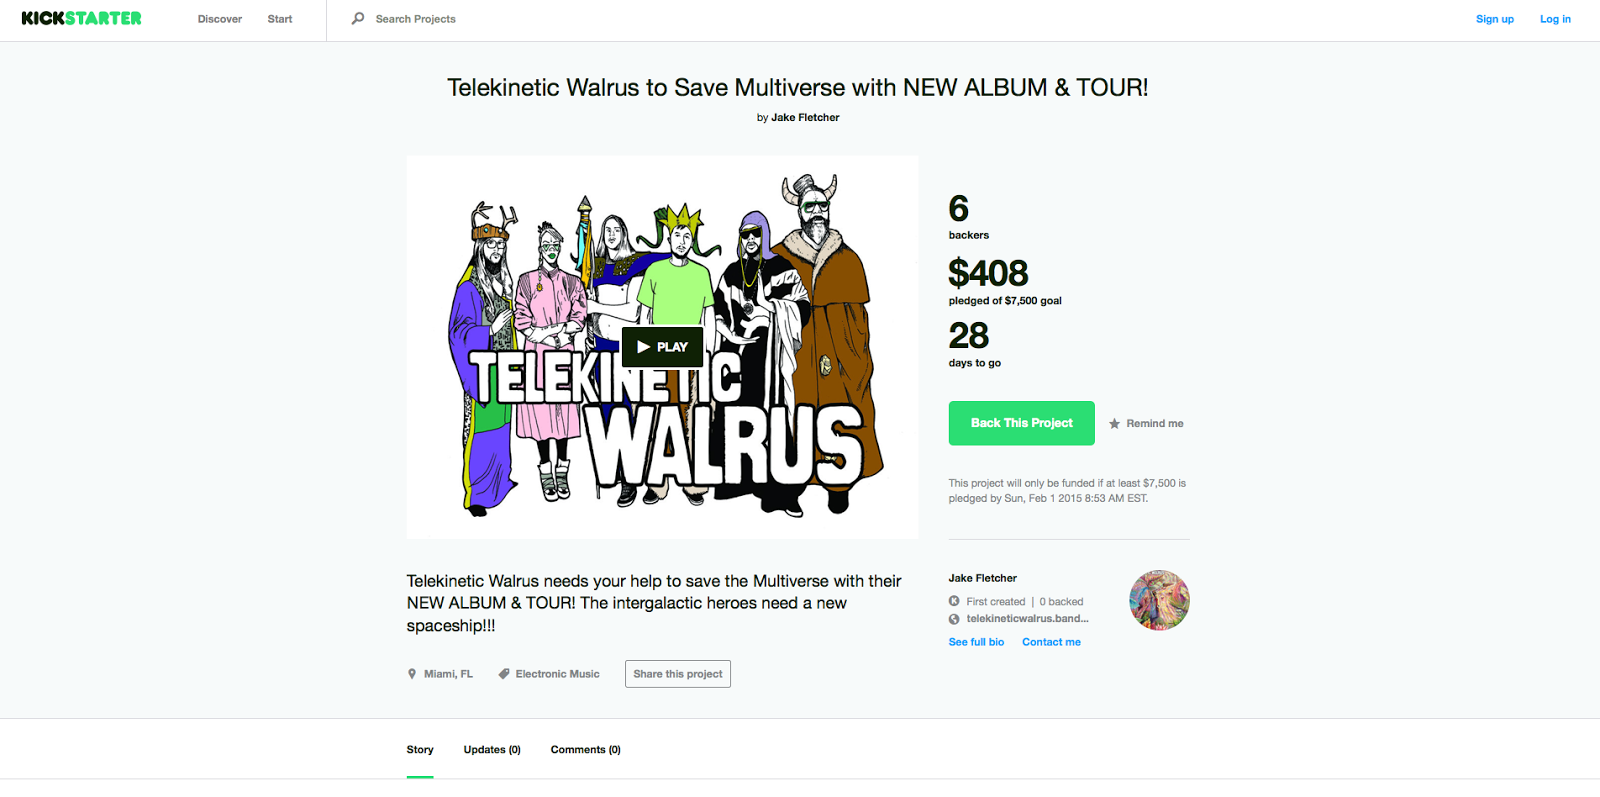 https://www.kickstarter.com/projects/telekineticwalrus/telekinetic-walrus-to-save-multiverse-with-new-alb?ref=video